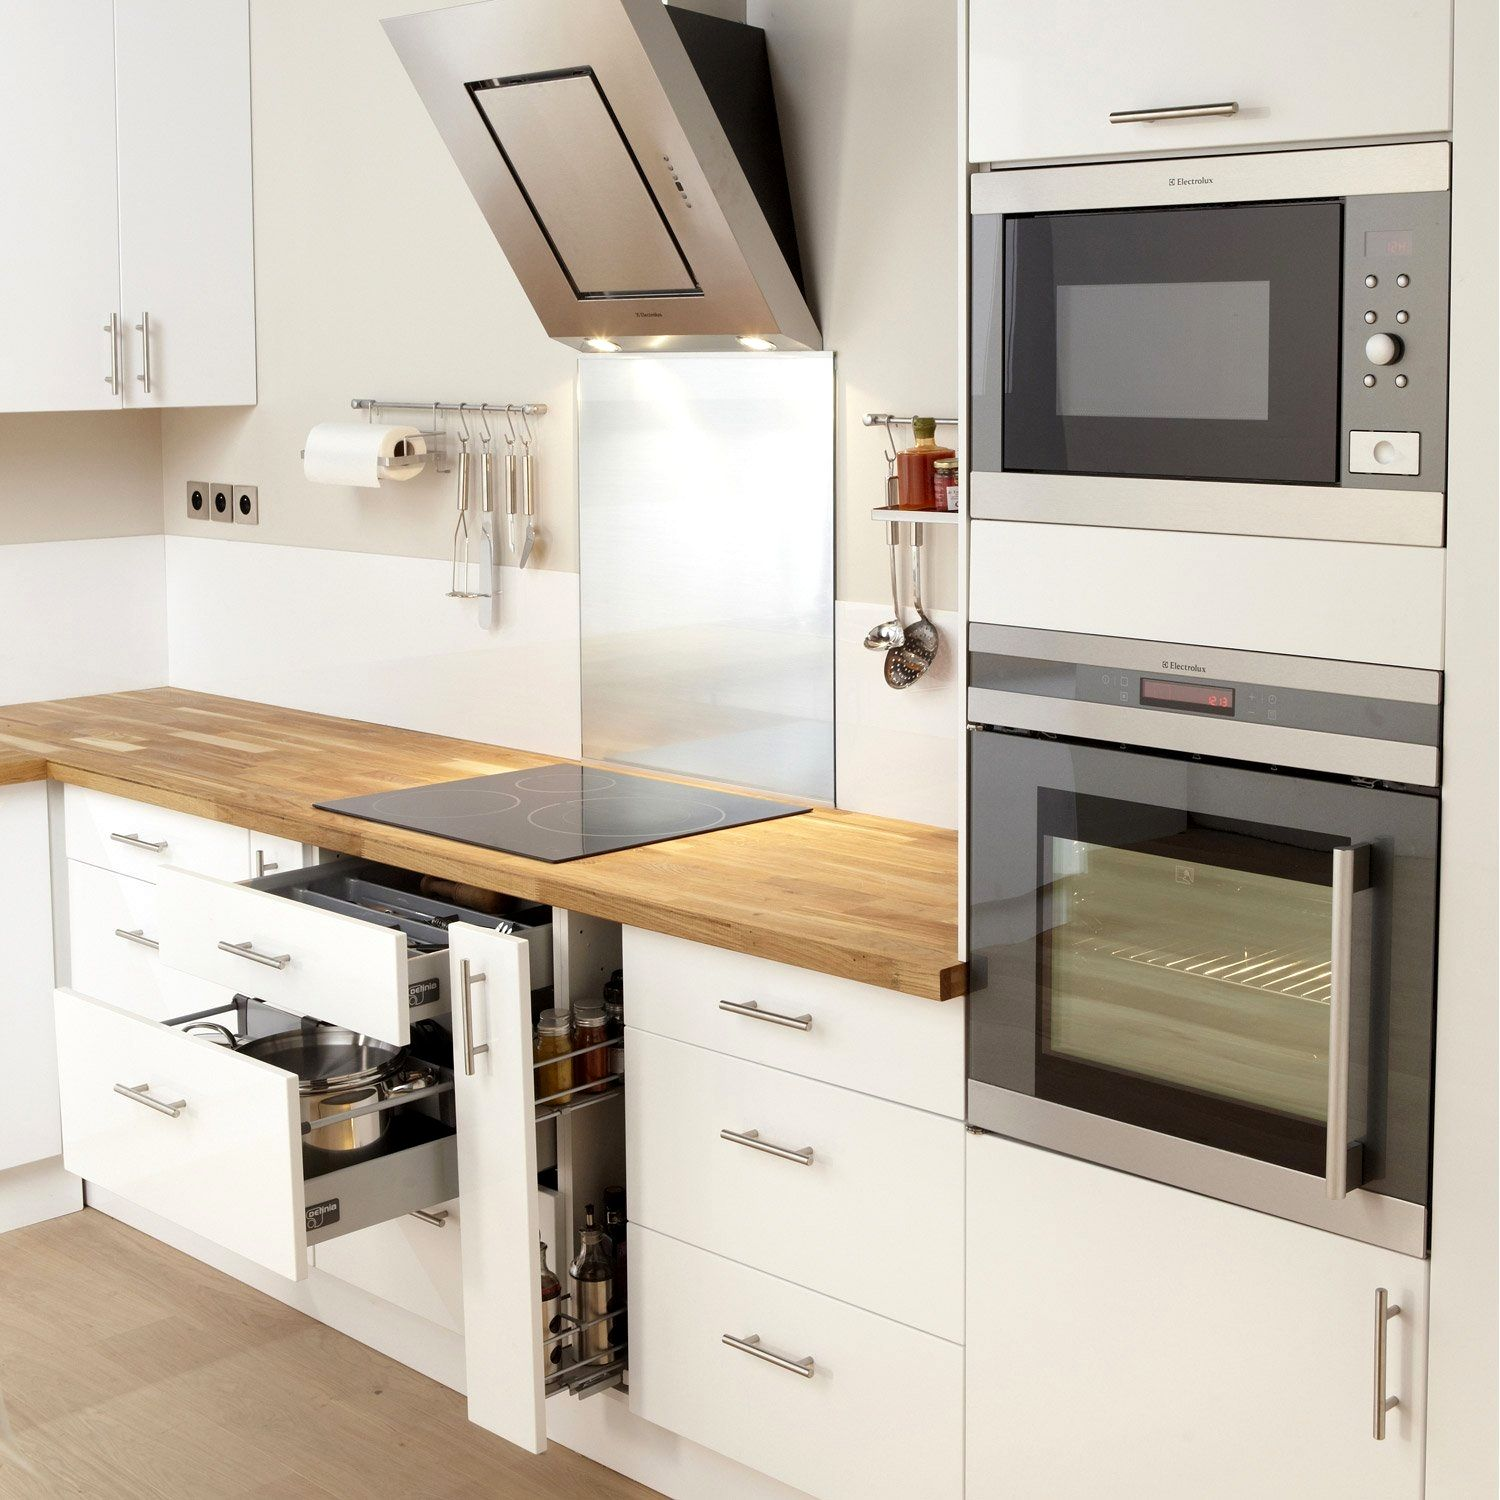 Meuble Pour Cuisine Ideas In 2020 Small Kitchen Cabinets Kitchen Interior Scandinavian Dining Room